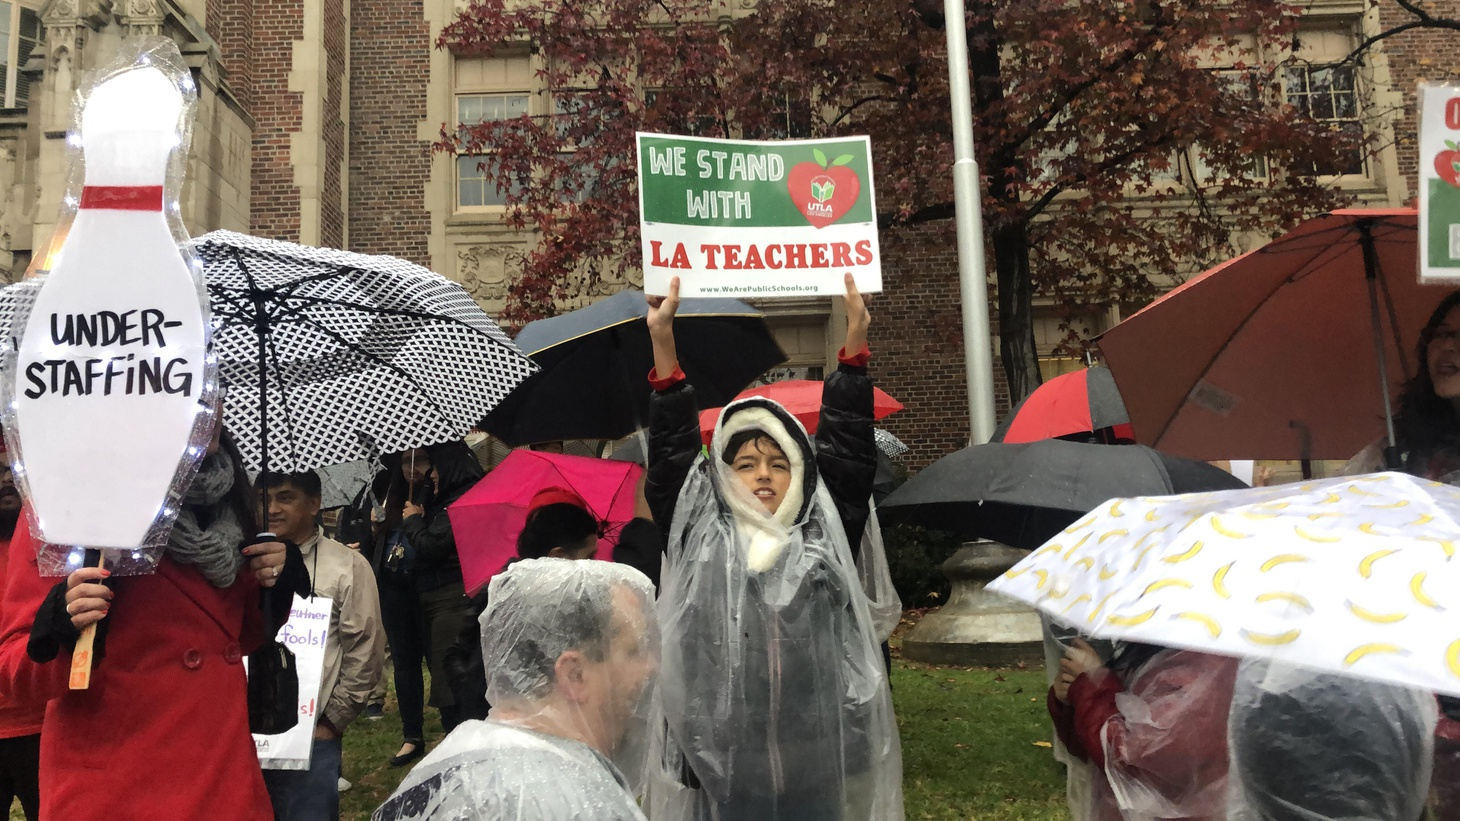 On Monday, LAUSD teachers picketed at schools around the city.